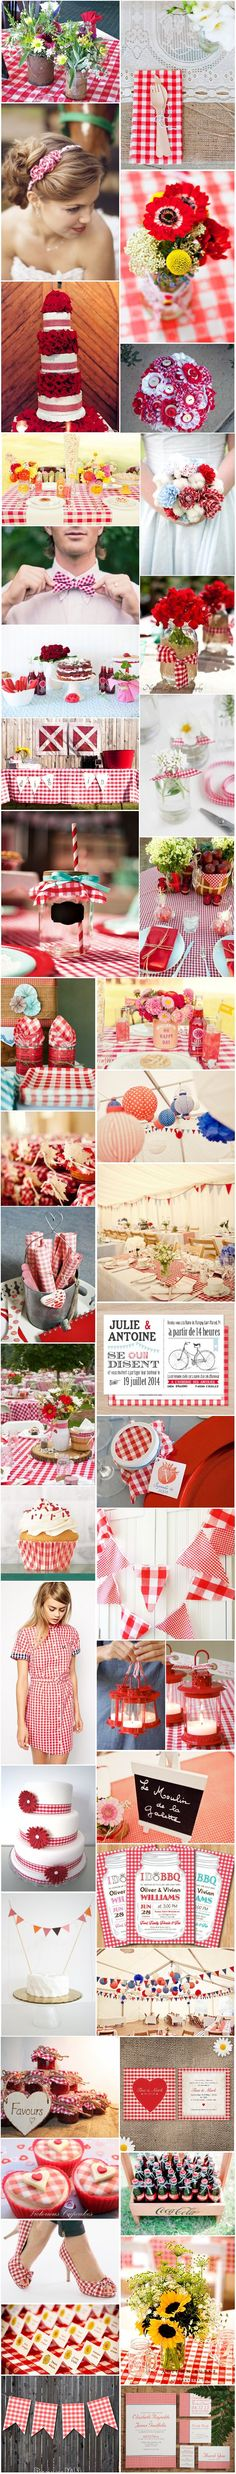 inspiration mariage guinguette - Babou Mariage .